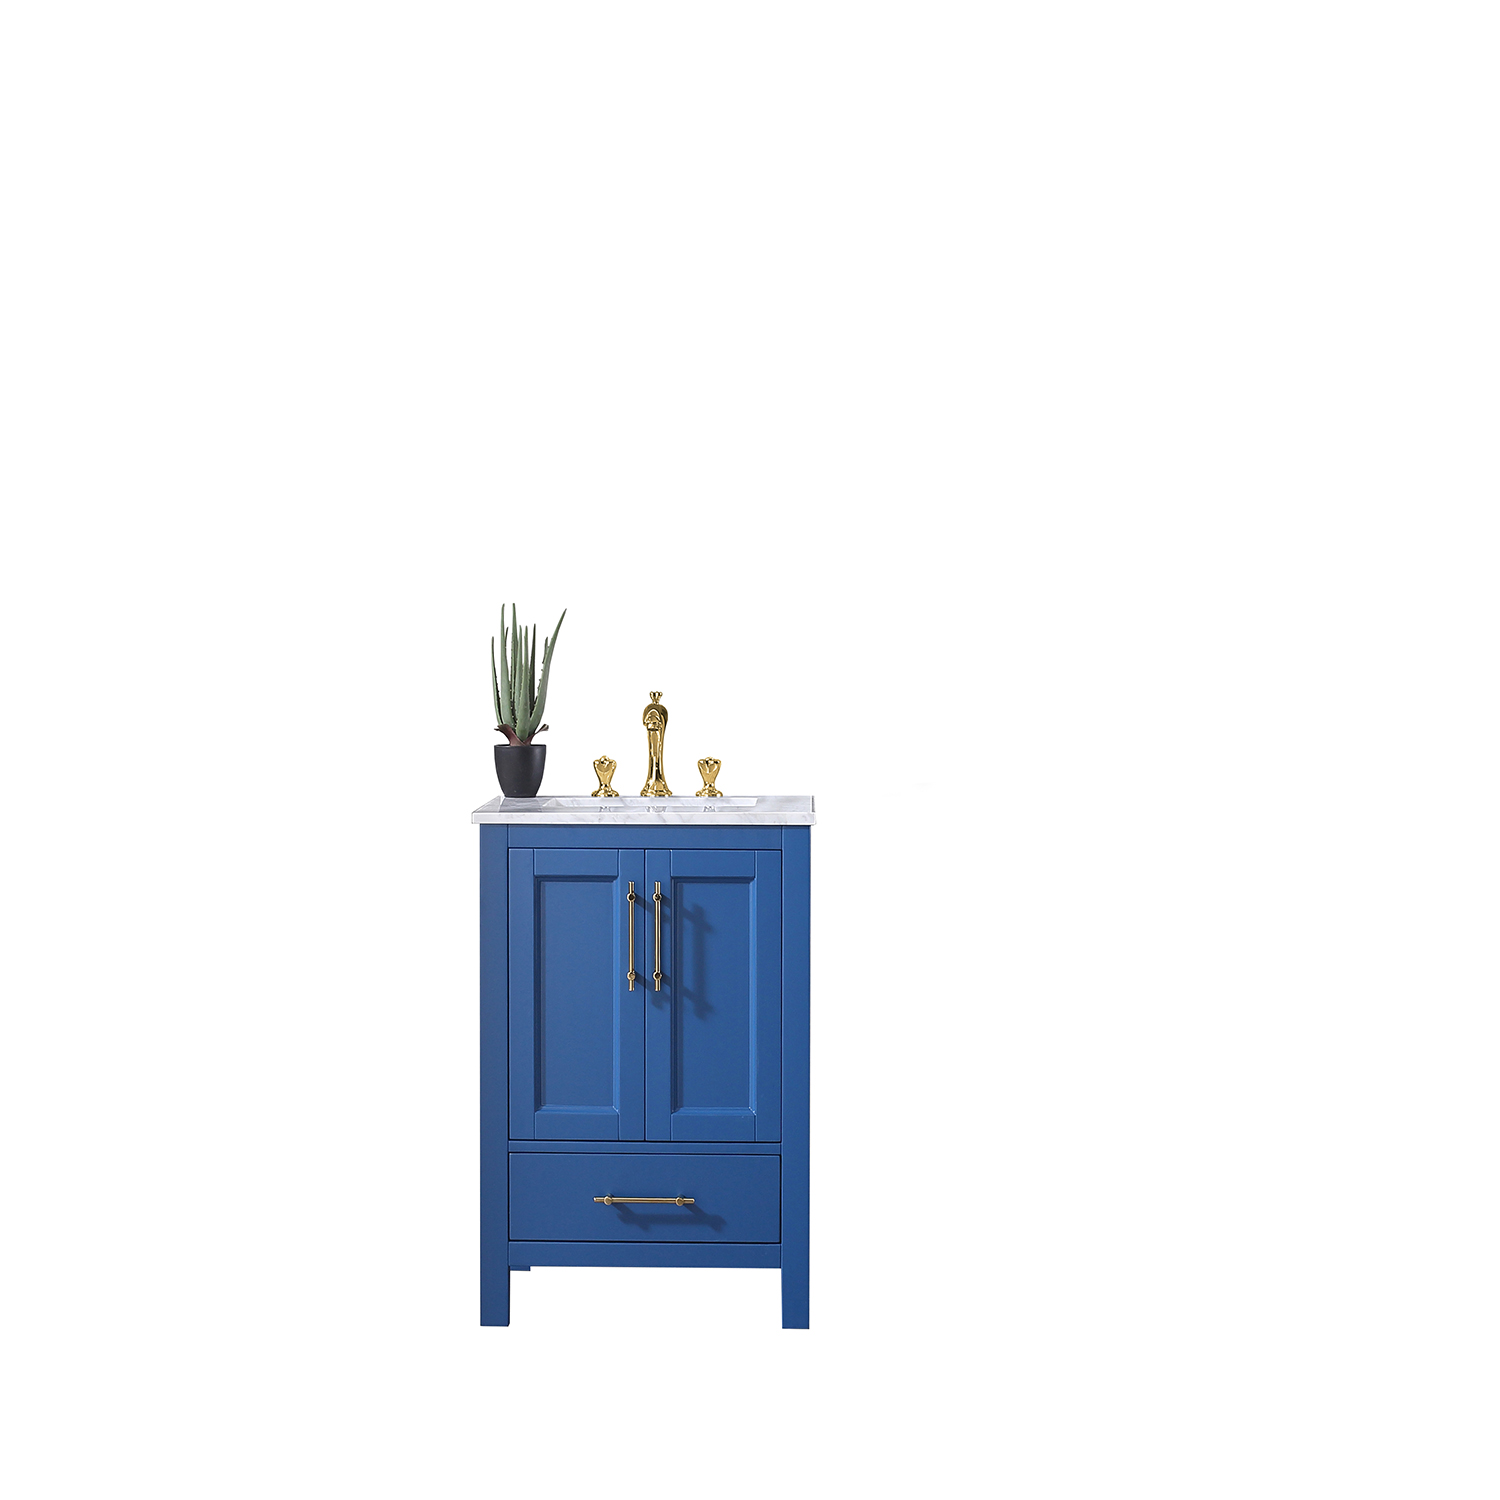 eviva navy 24 inch deep blue bathroom vanity with white carrara counter top and white undermount porcelain sink